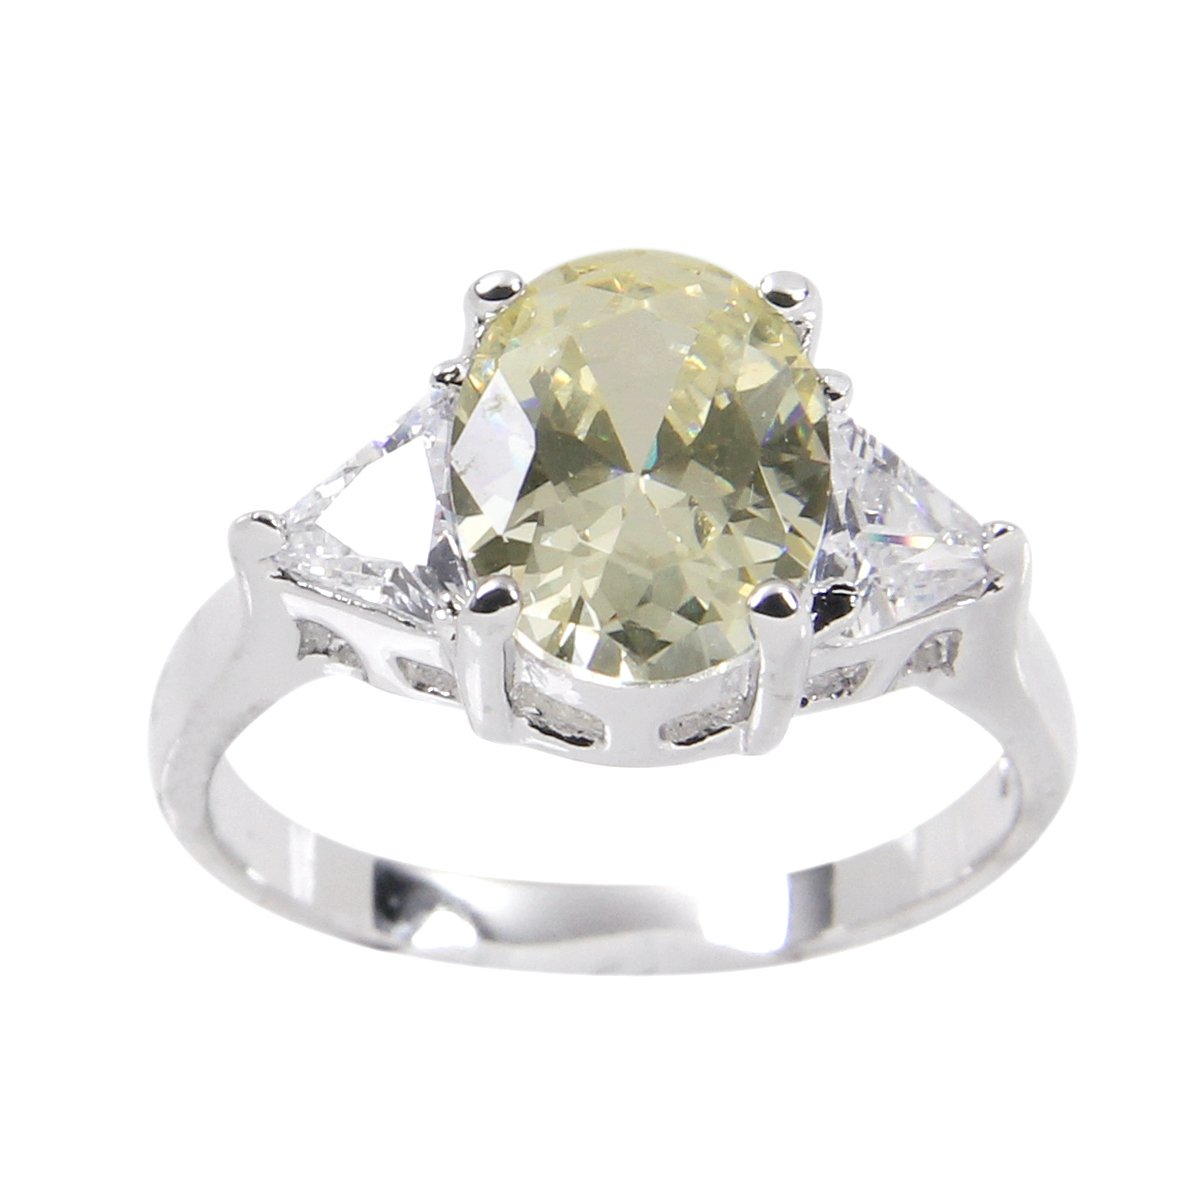 Ring-Three Stone Ring with Pale Yellow Cubic Zirconium